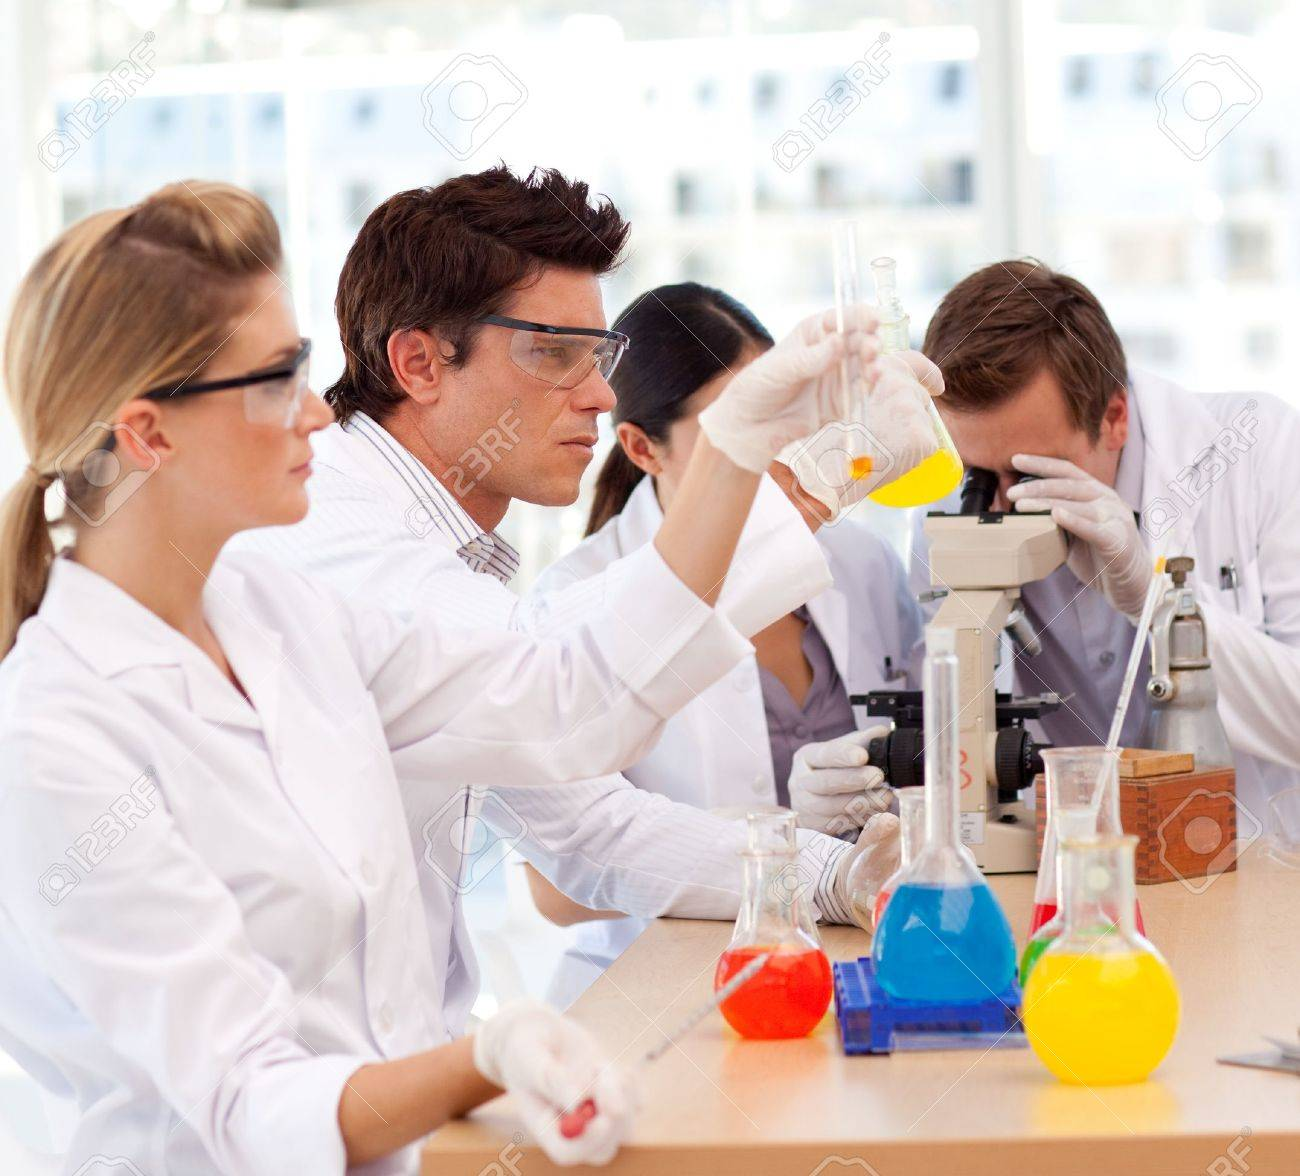 Scientists working in a laboratory Stock Photo - 10110636